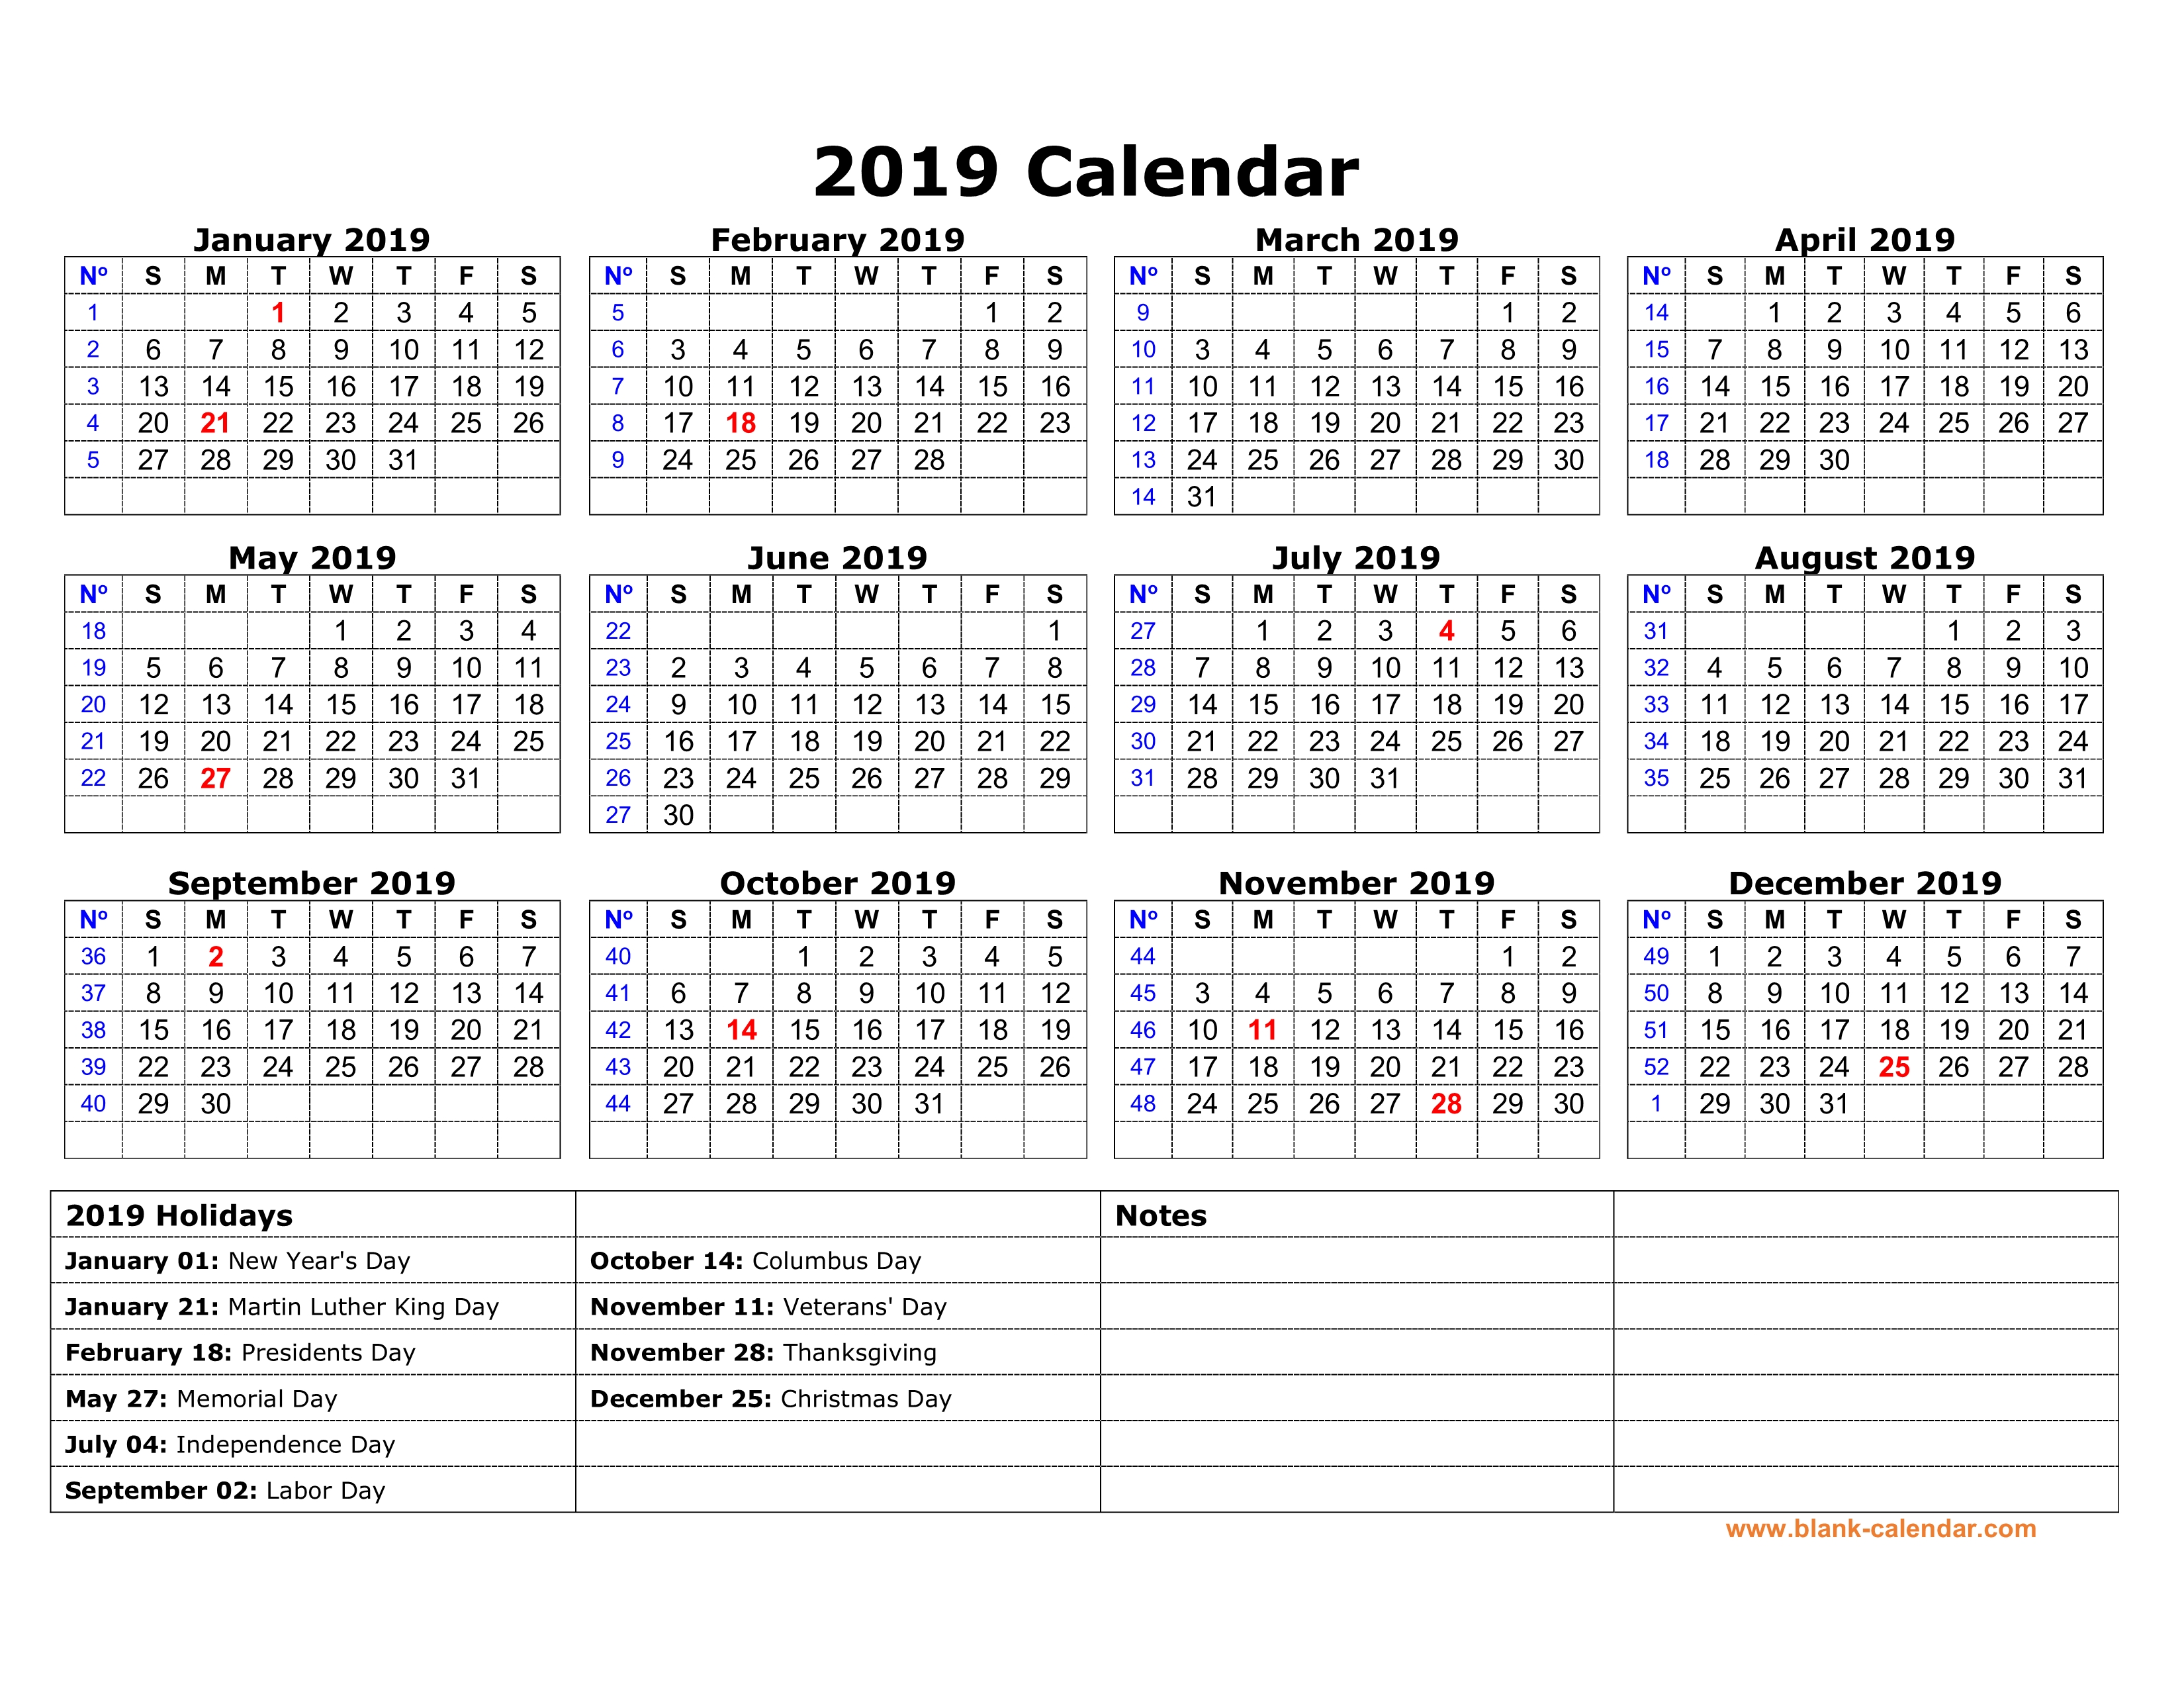 Next Year Calendar 2019 Sri Lanka With Free Yearly UK National Holidays Templates Public